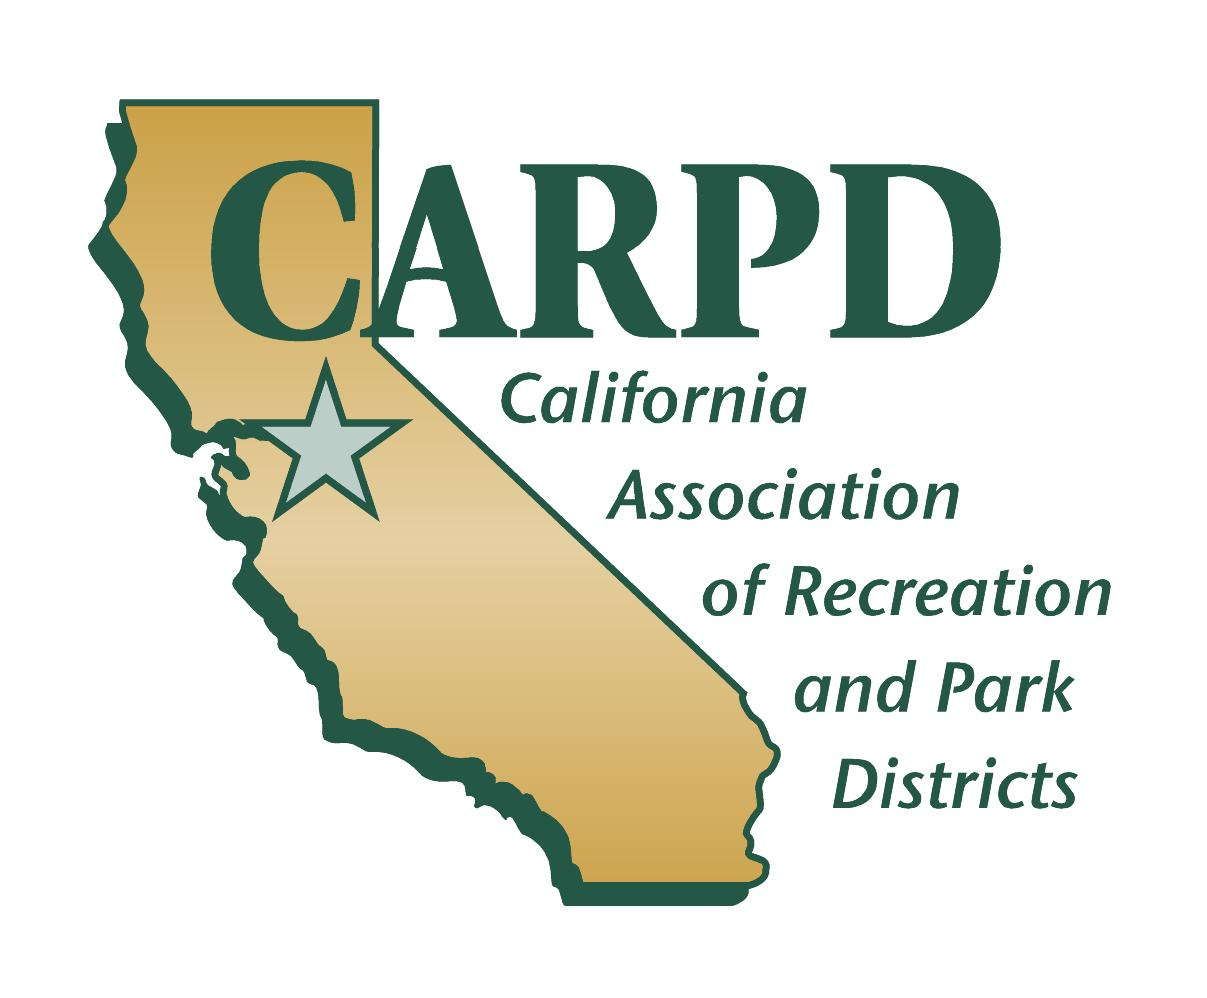 California Association of Recreation and Park Districts